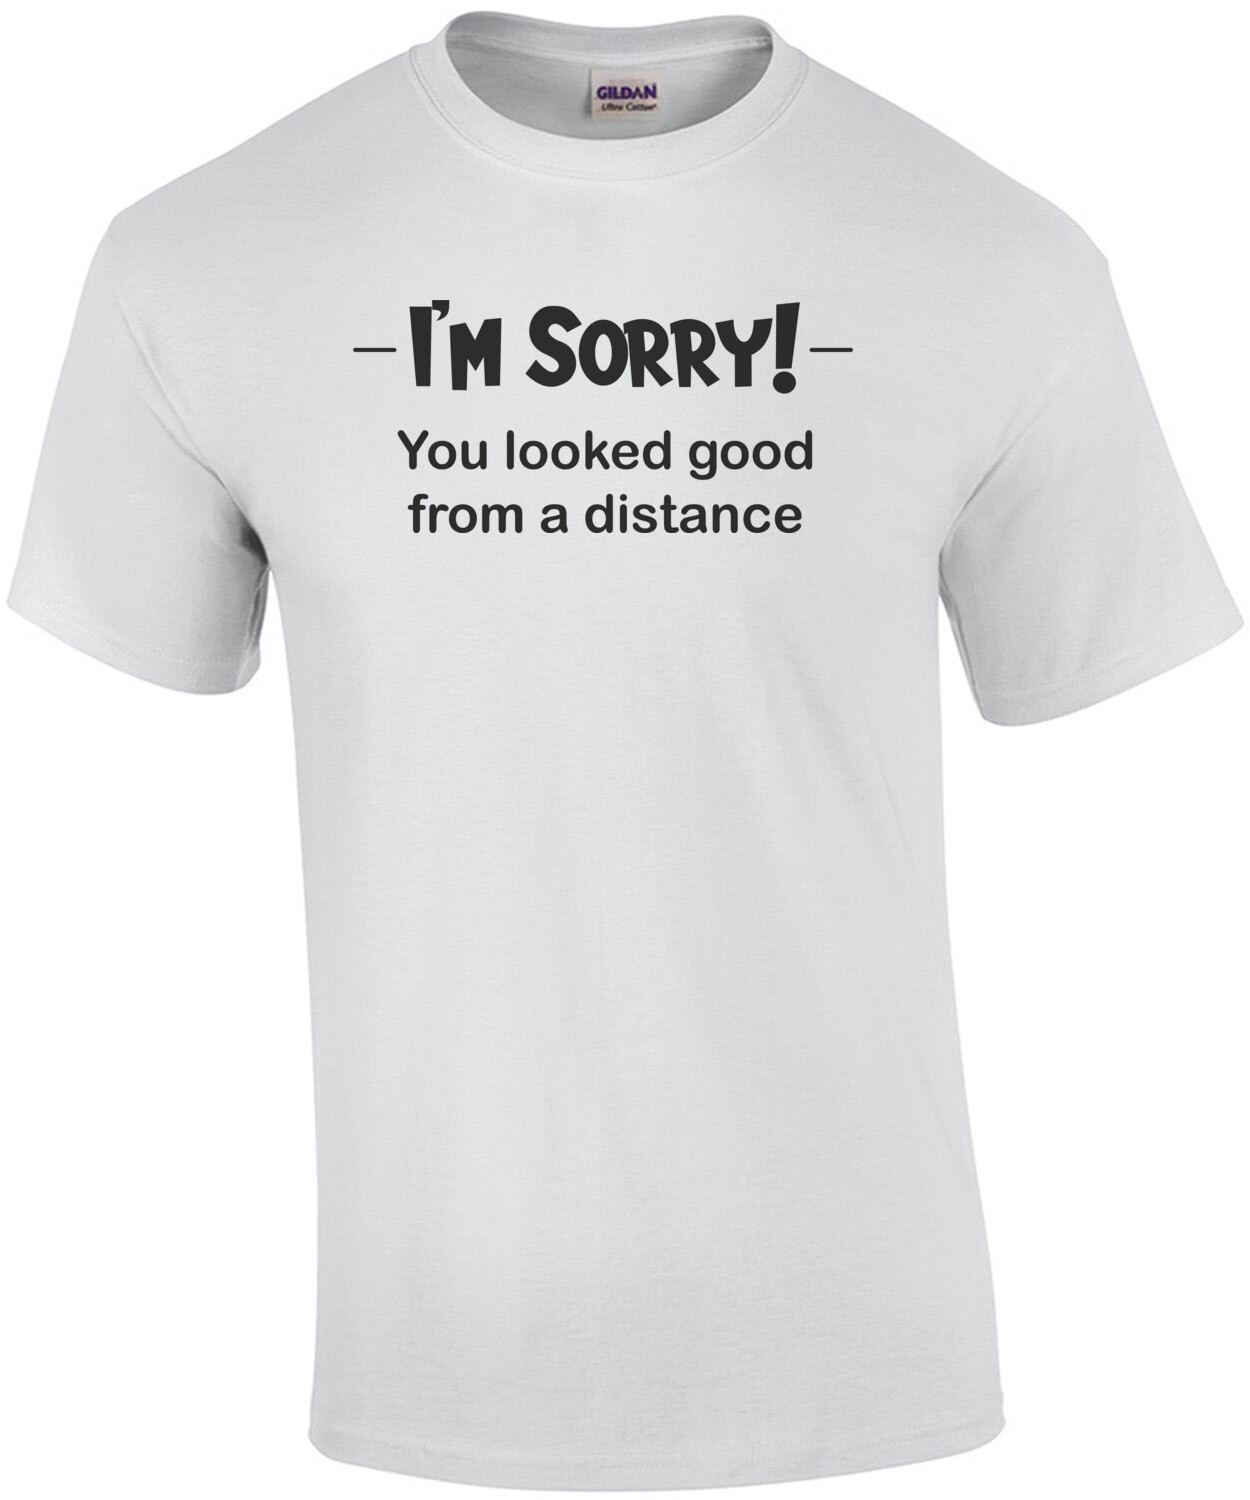 I'm Sorry! You looked good from a distance. Shirt